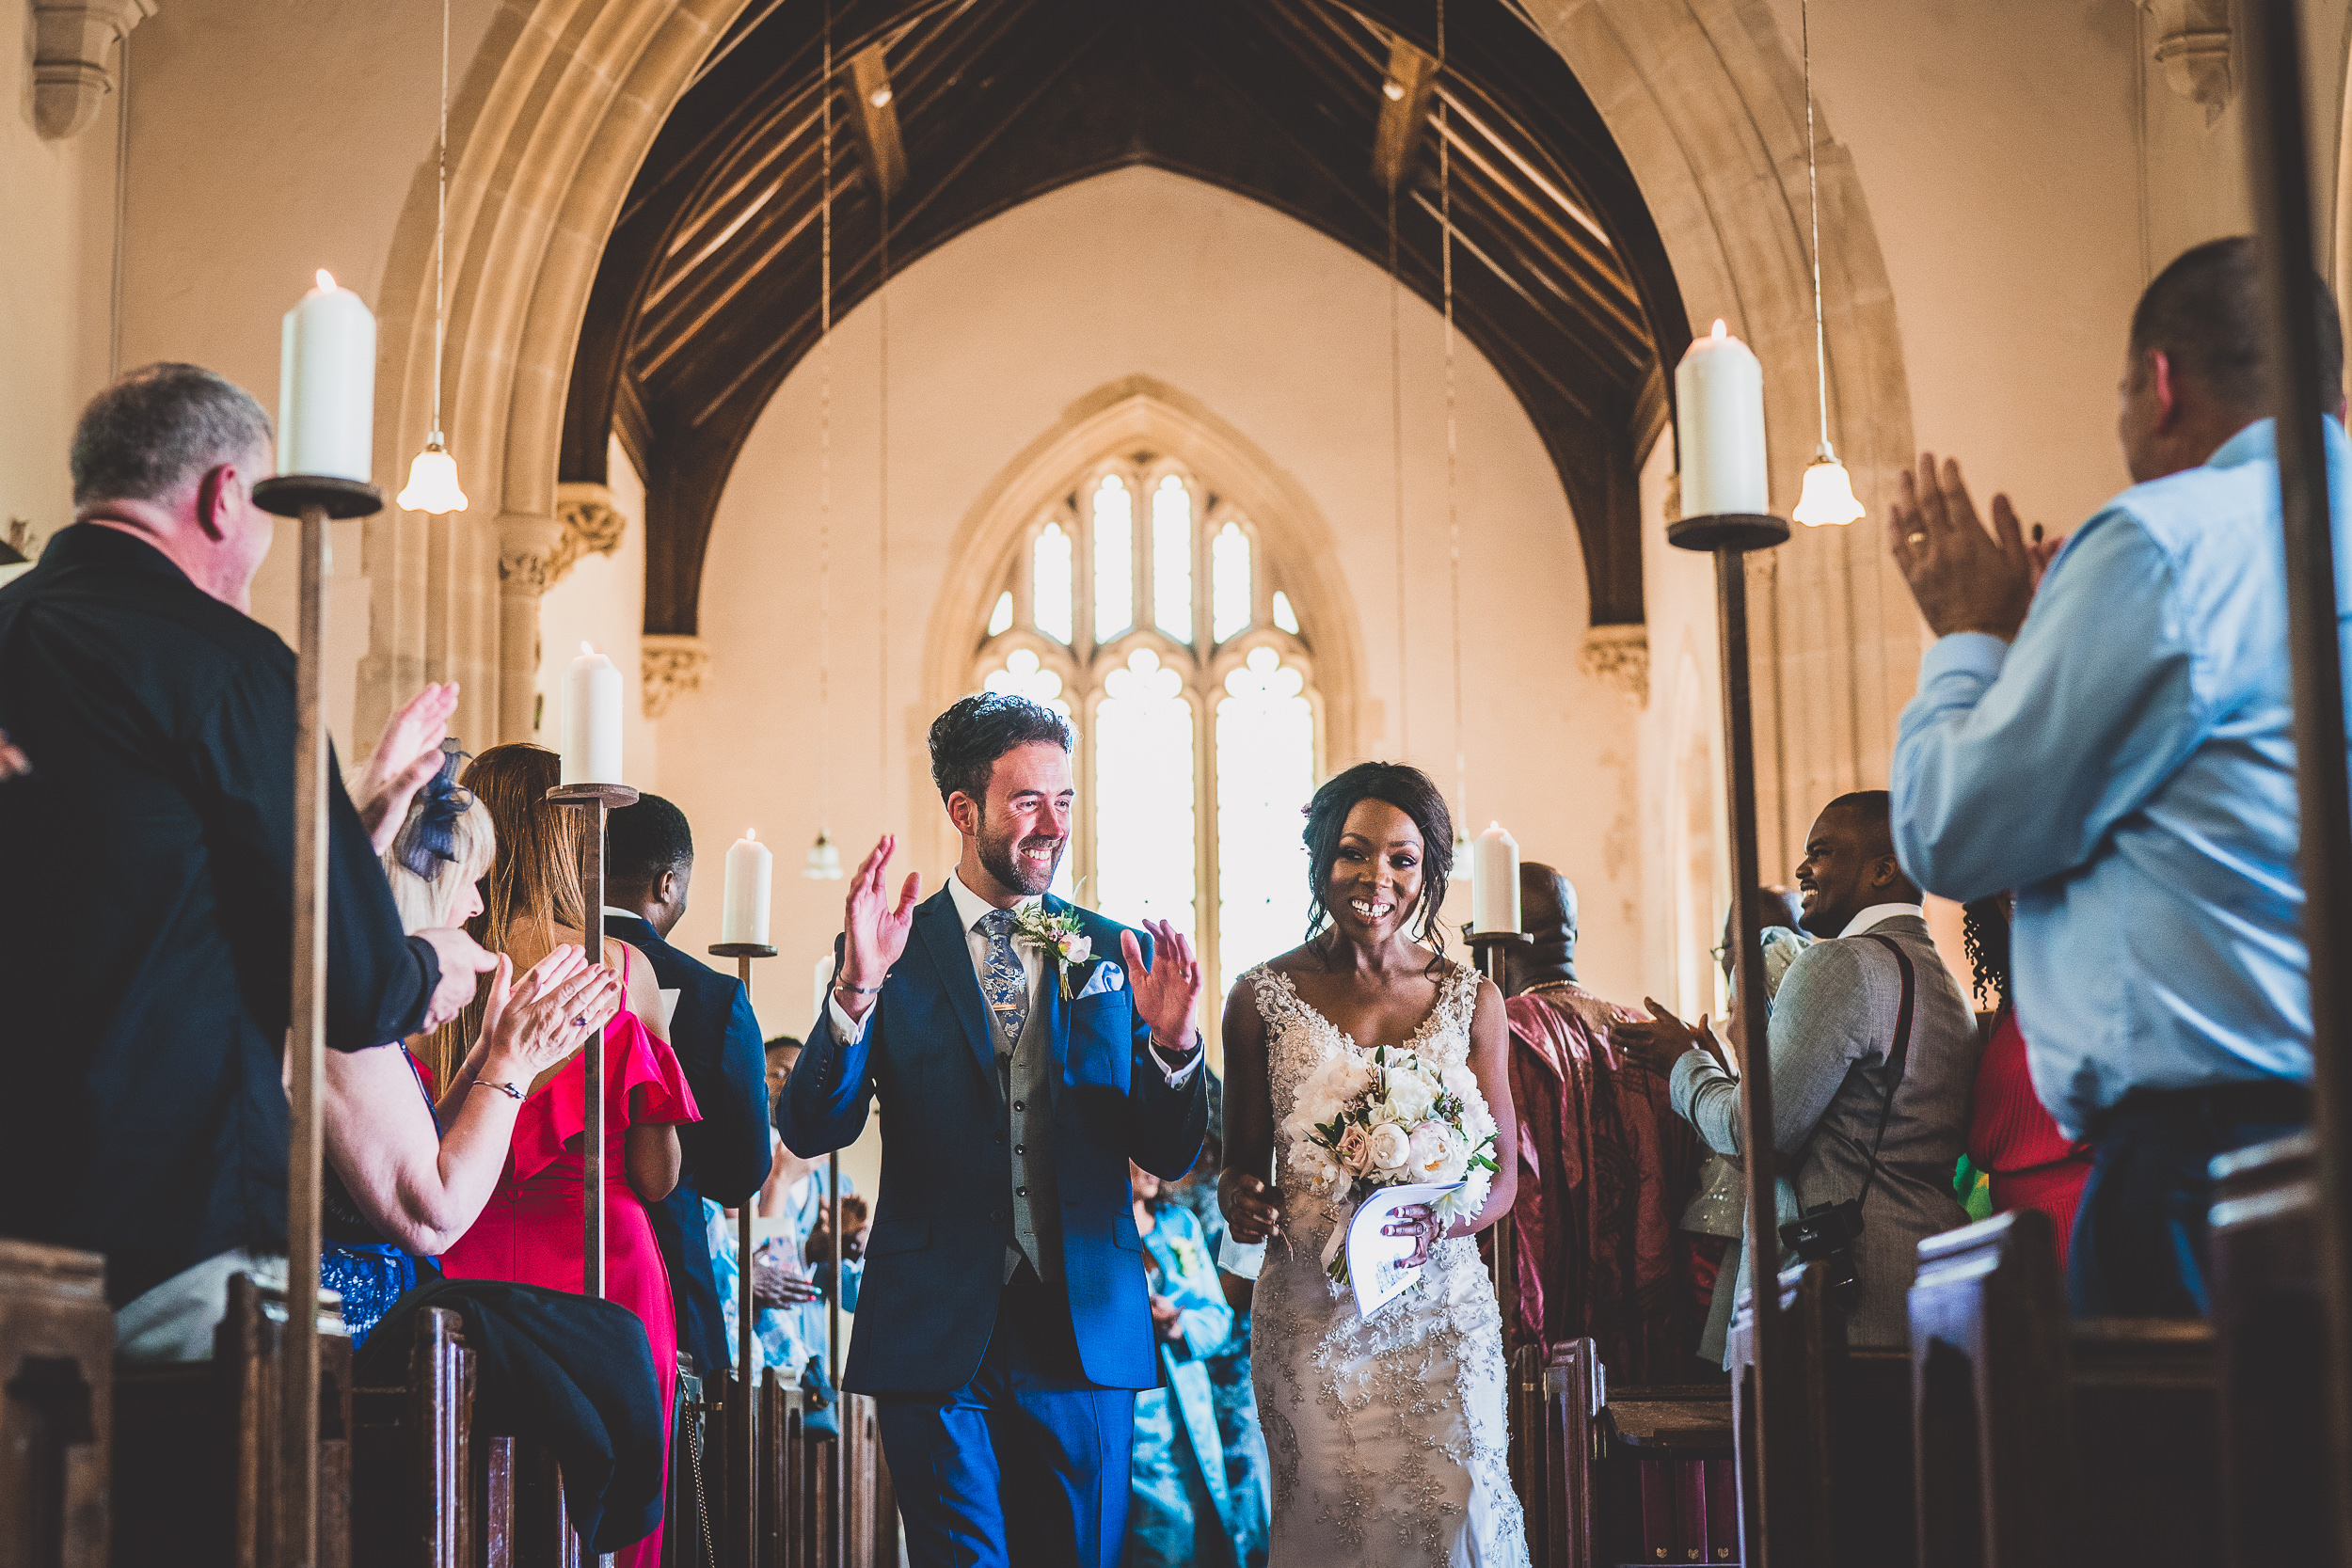 Lulworth Castle Wedding Photography | Amina & David Amina David ss 035